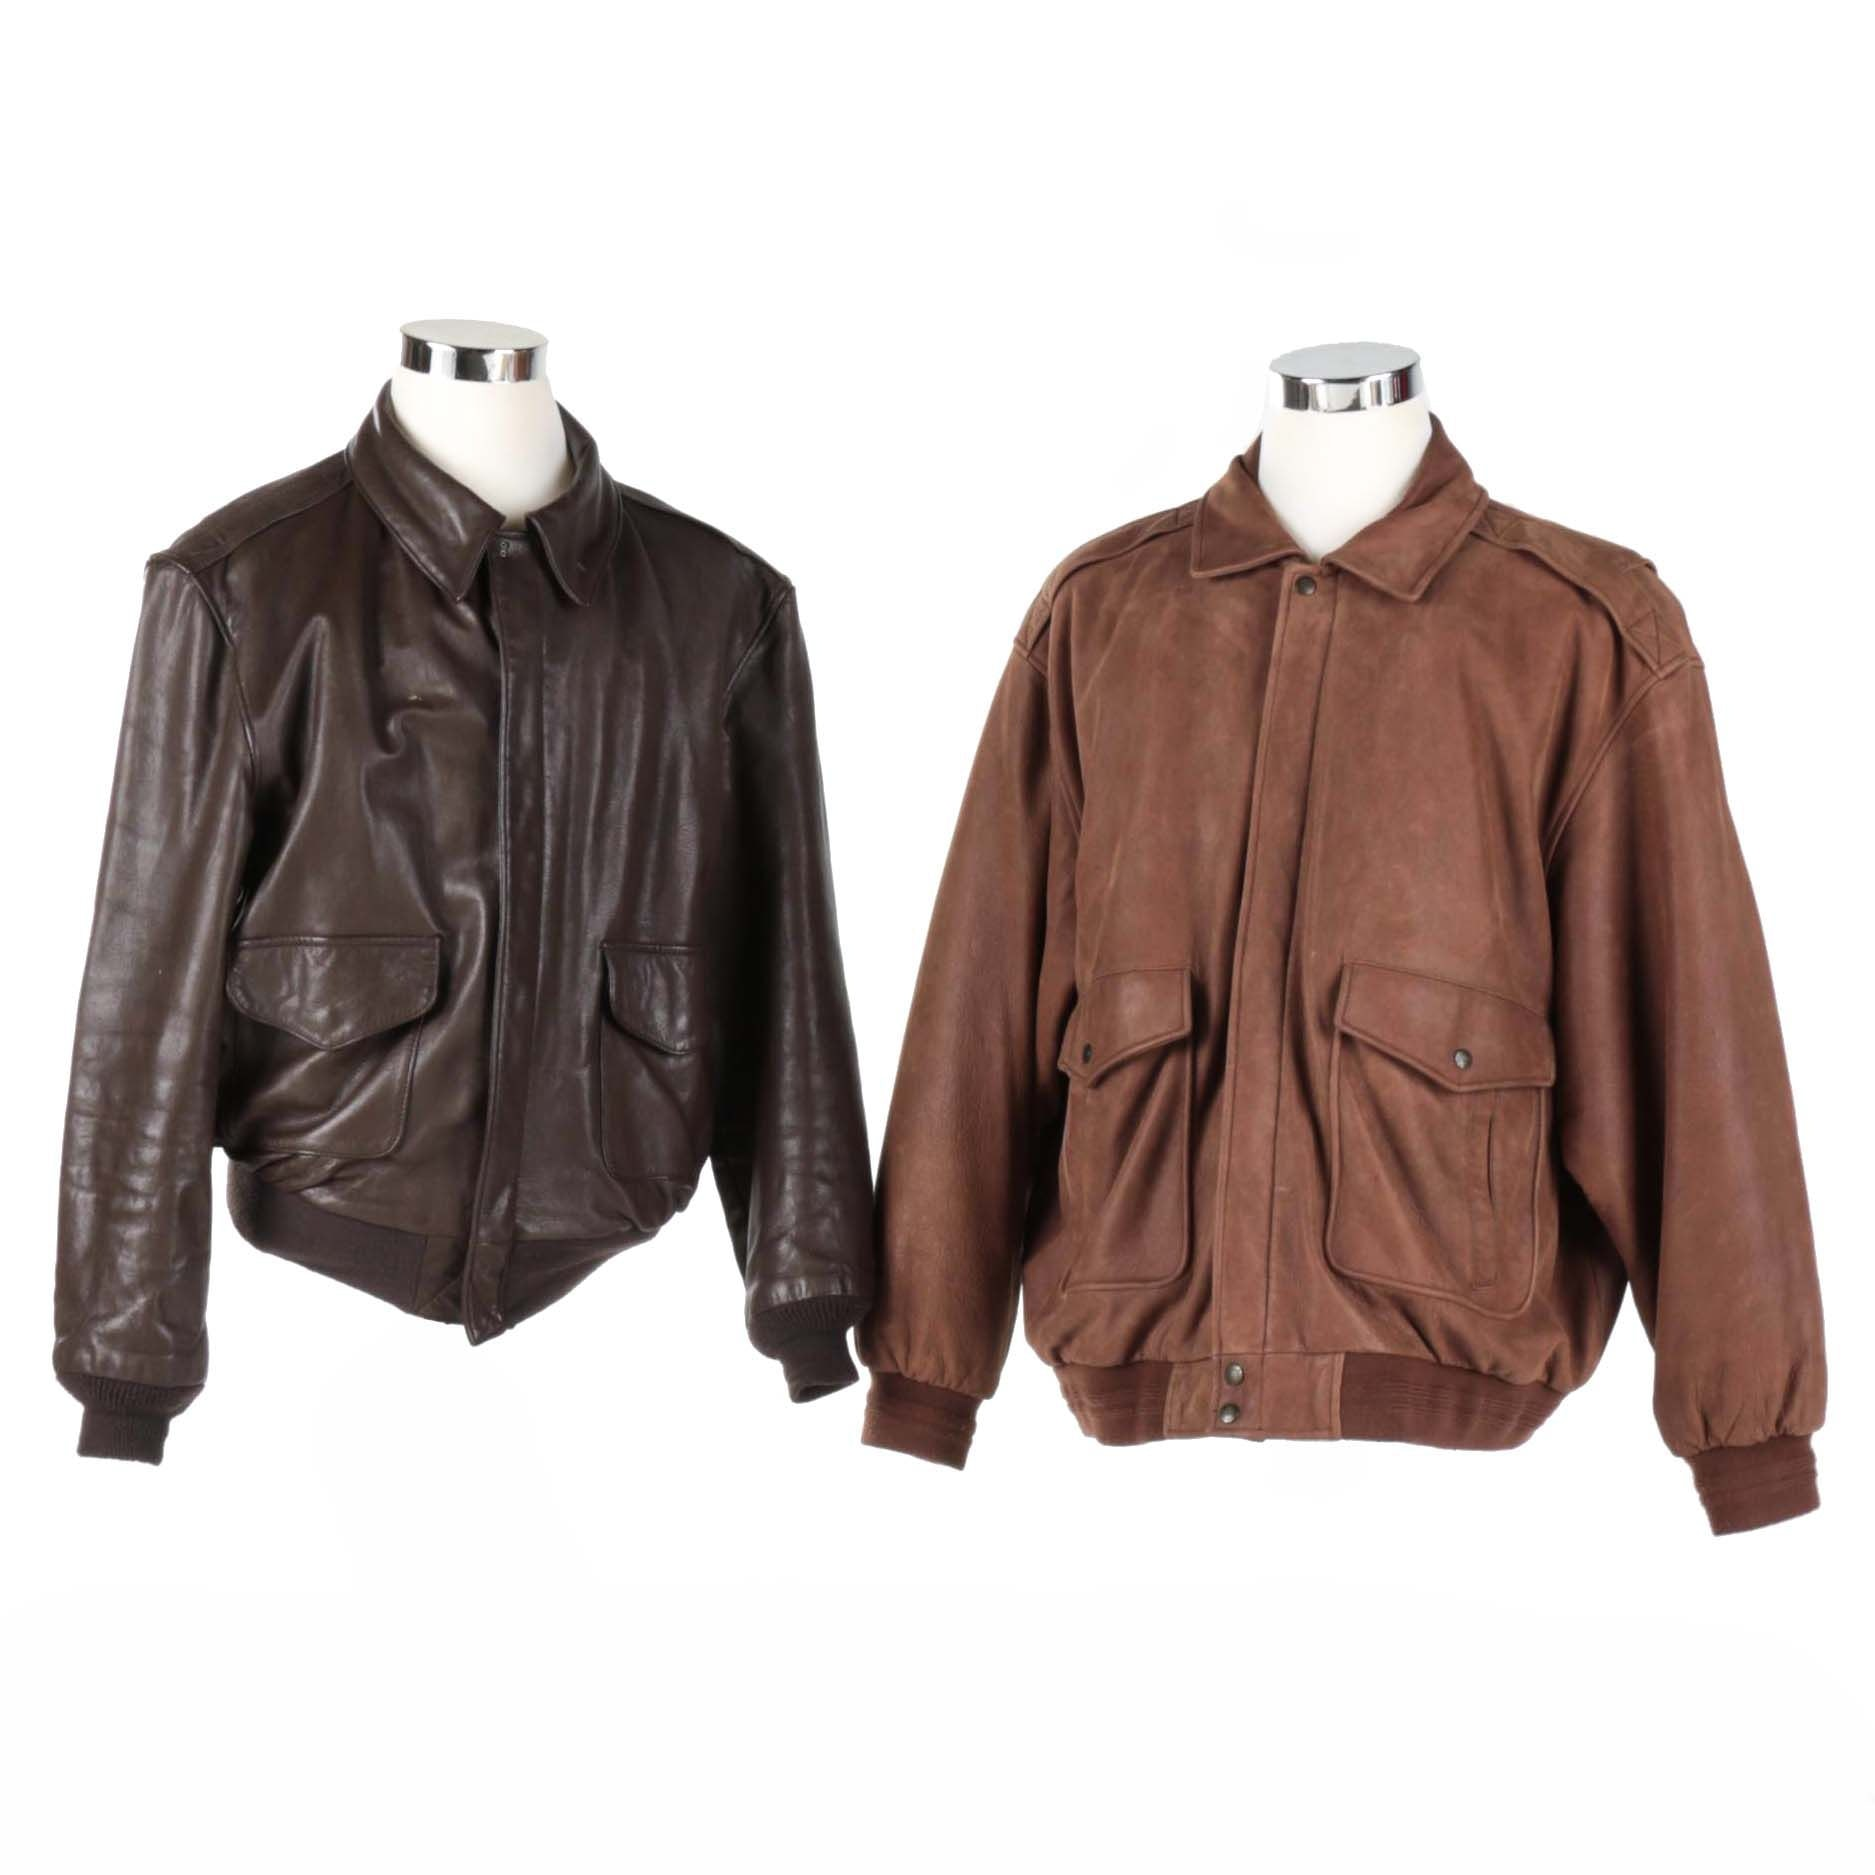 Two Men's Brown Leather Jackets